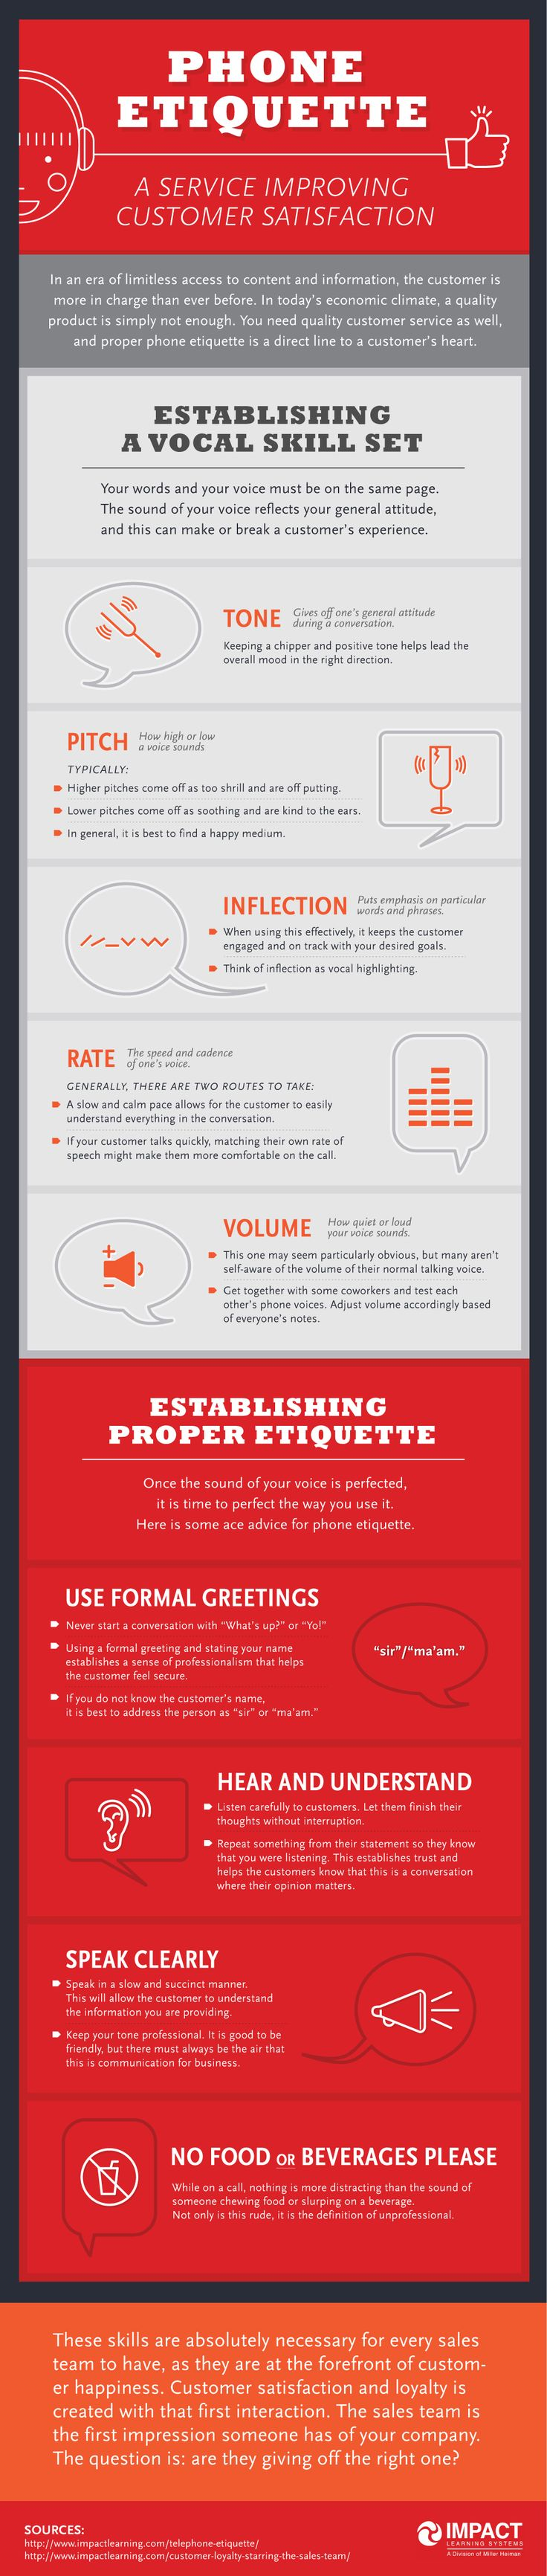 Infographic: Phone Etiquette to Improve Customer Service